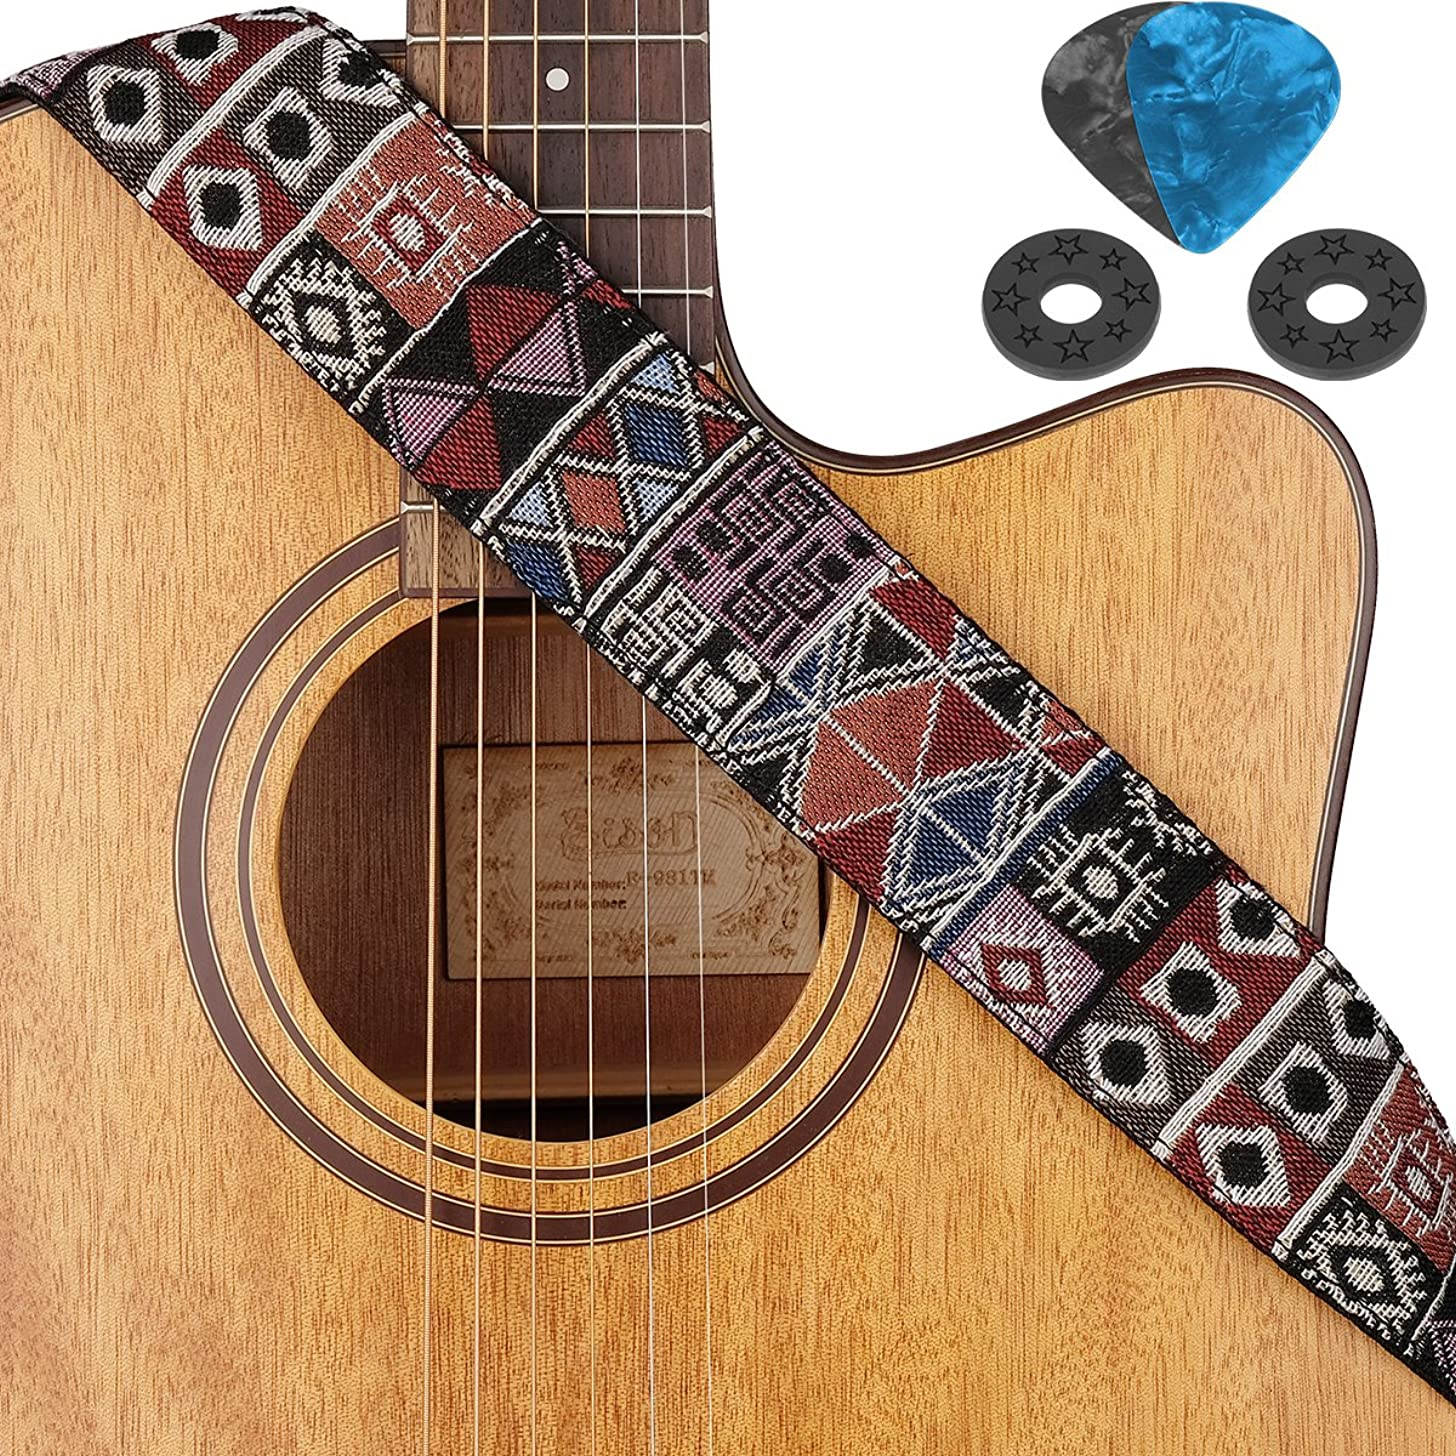 Guitar Strap for Electric Acoustic Bass Guitars Jacquard Weave Strap Woven Hootenanny Vintage Pattern With Leather Ends for Kids Adult,Pick Pocket,Picks, Strap Blocks